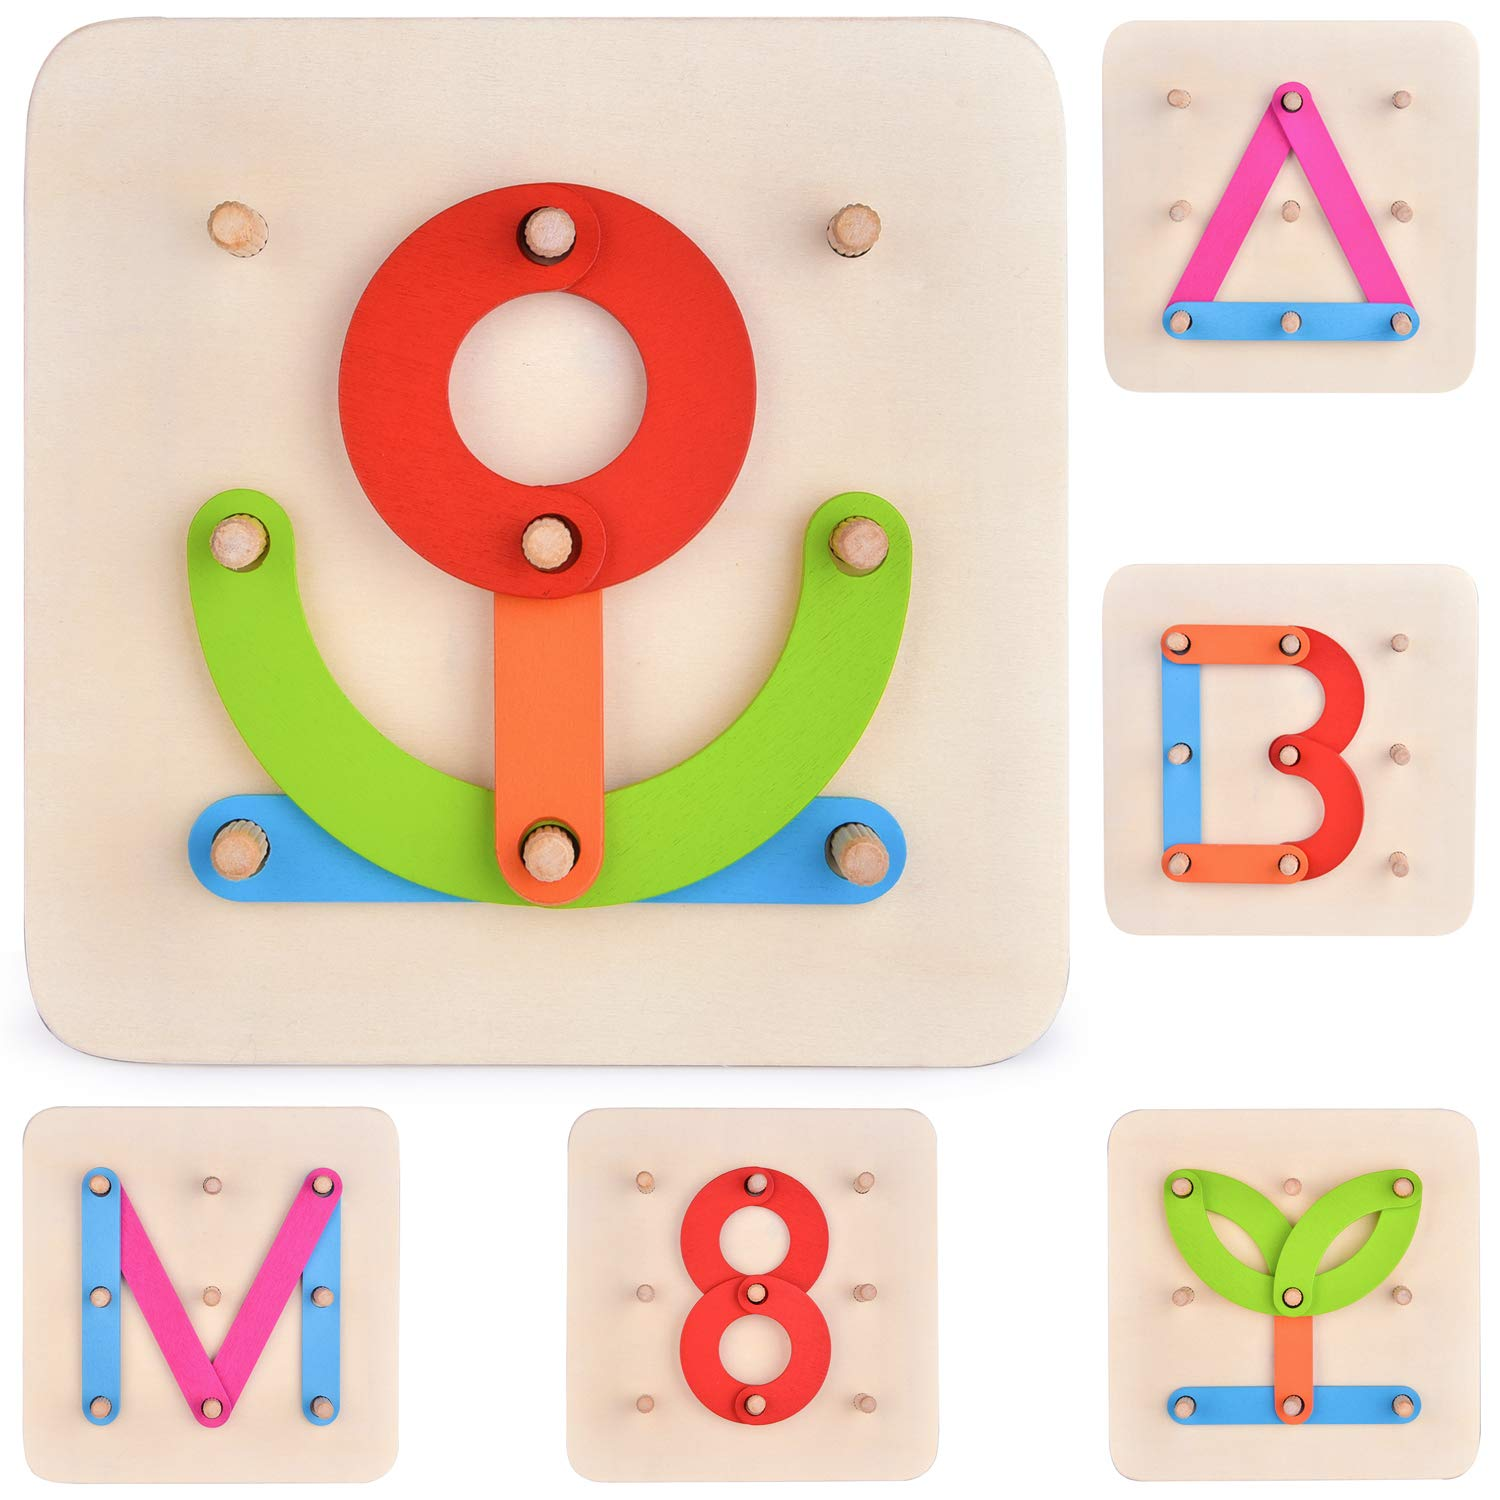 FUN LITTLE TOYS 27 PCs Wooden Letters Puzzles for Kids, Pegboard Set for Preschool Toy Learning Toy Stacking Blocks, Birthday Gift for Boys & Girls